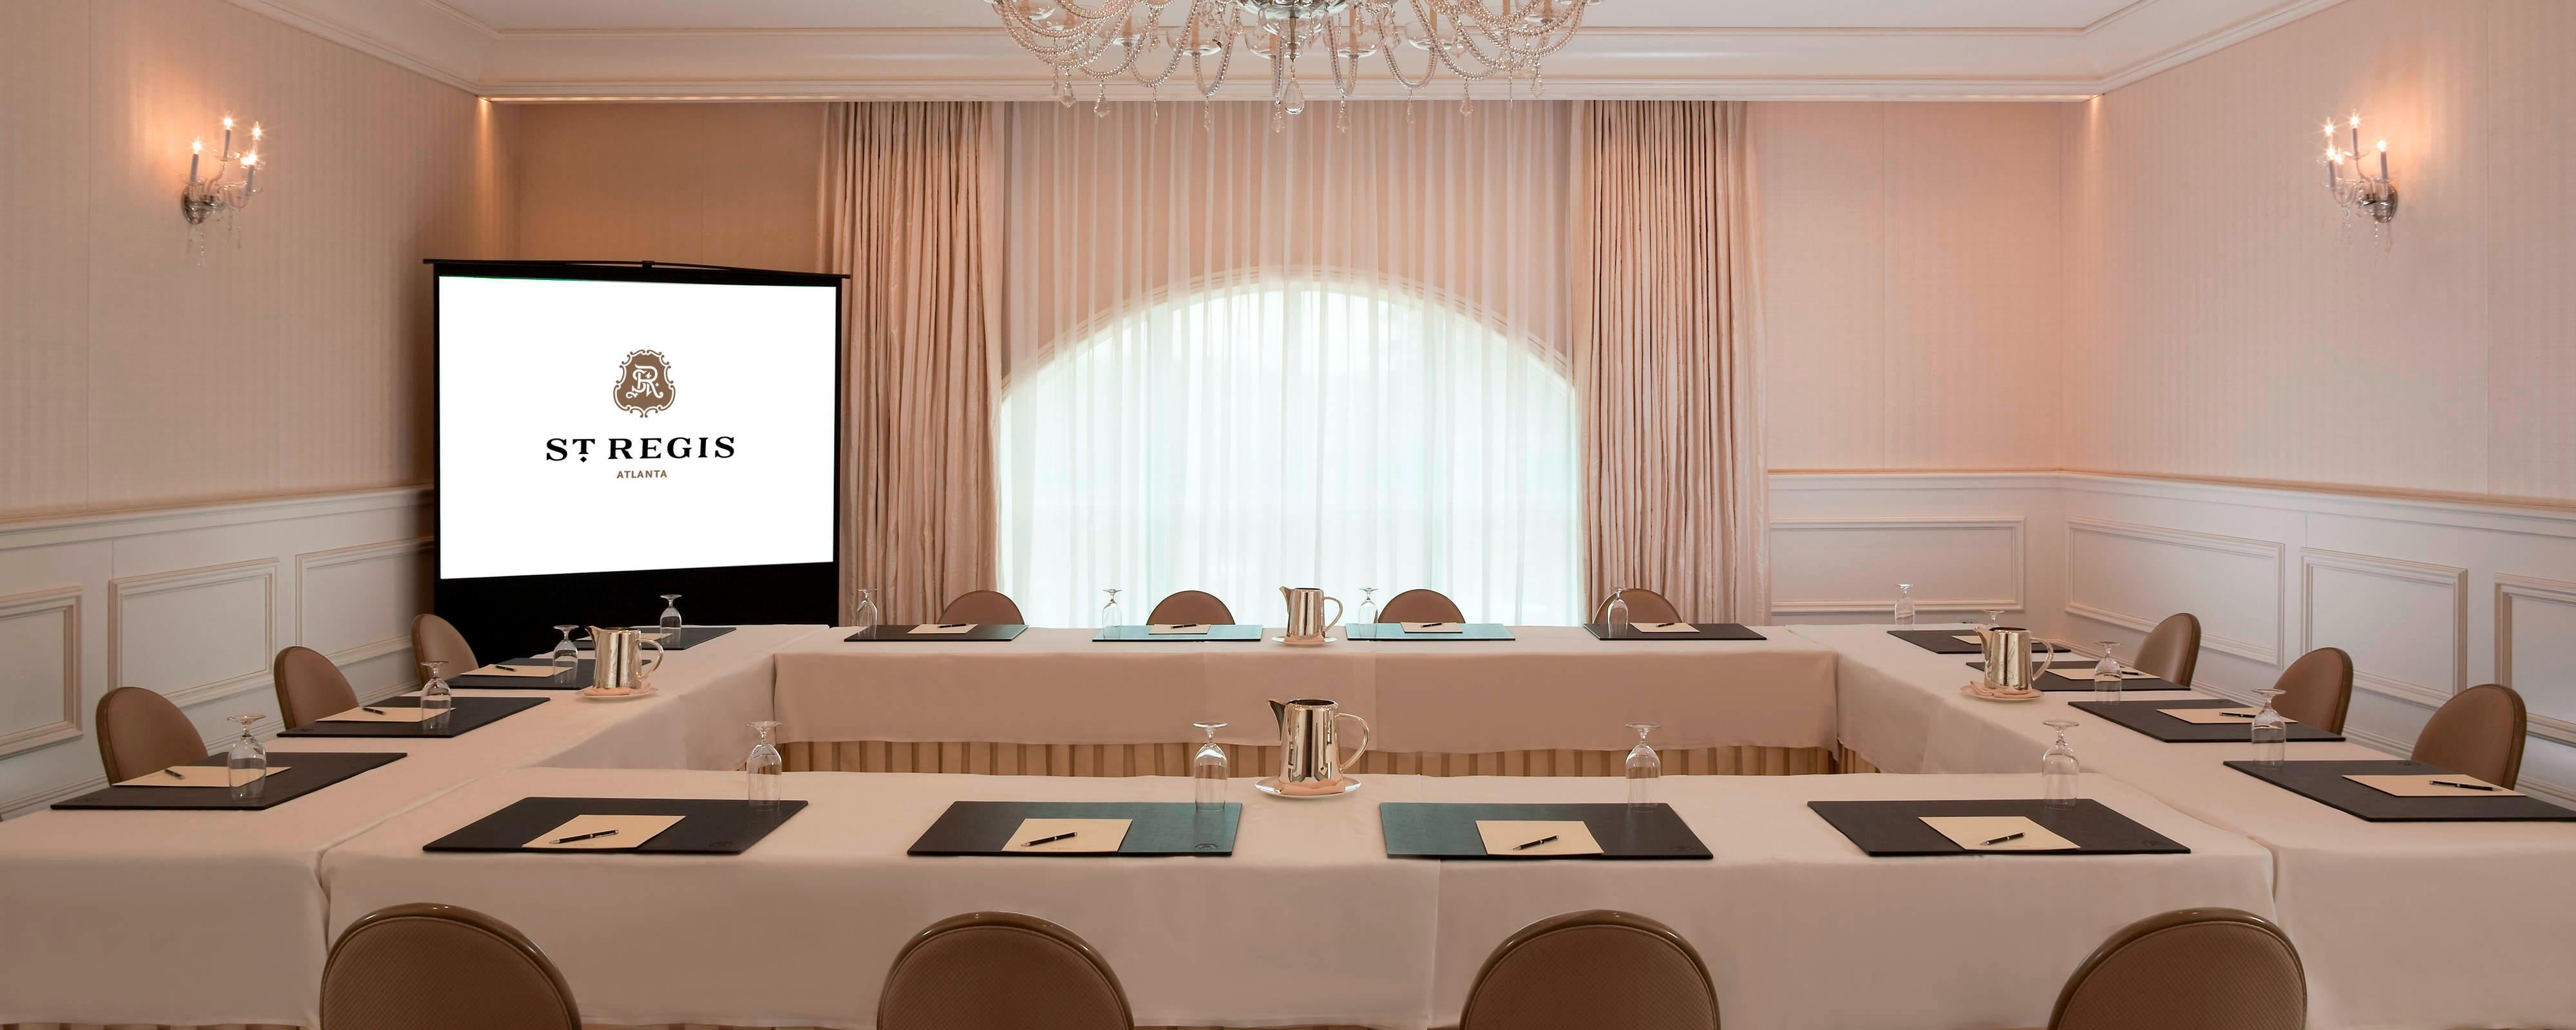 Meeting Room - Hollow Square